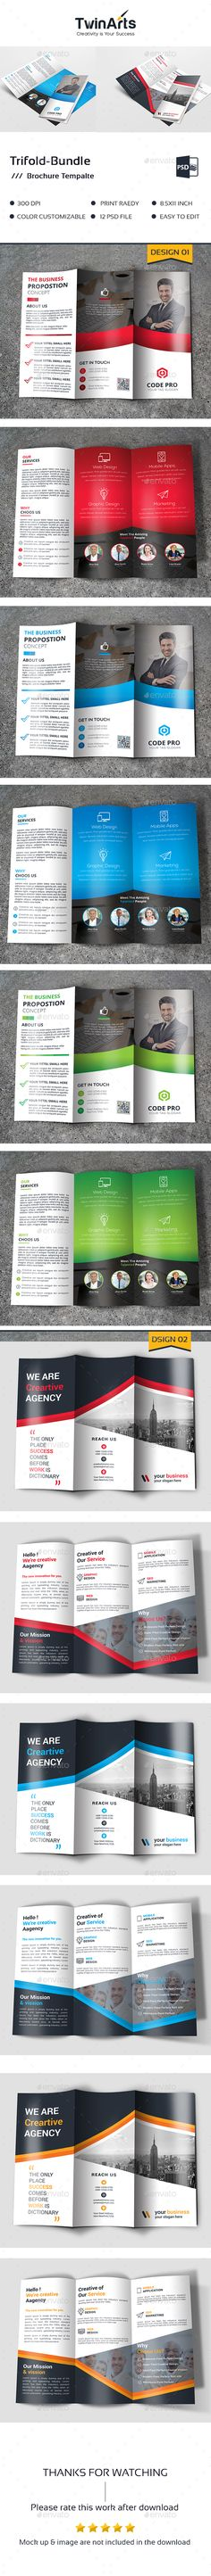 Corporate Trifold Brochure Design Template Bundle - Brochures Print Design Template PSD. Download here: https://graphicriver.net/item/trifold-bundle/19429269?ref=yinkira